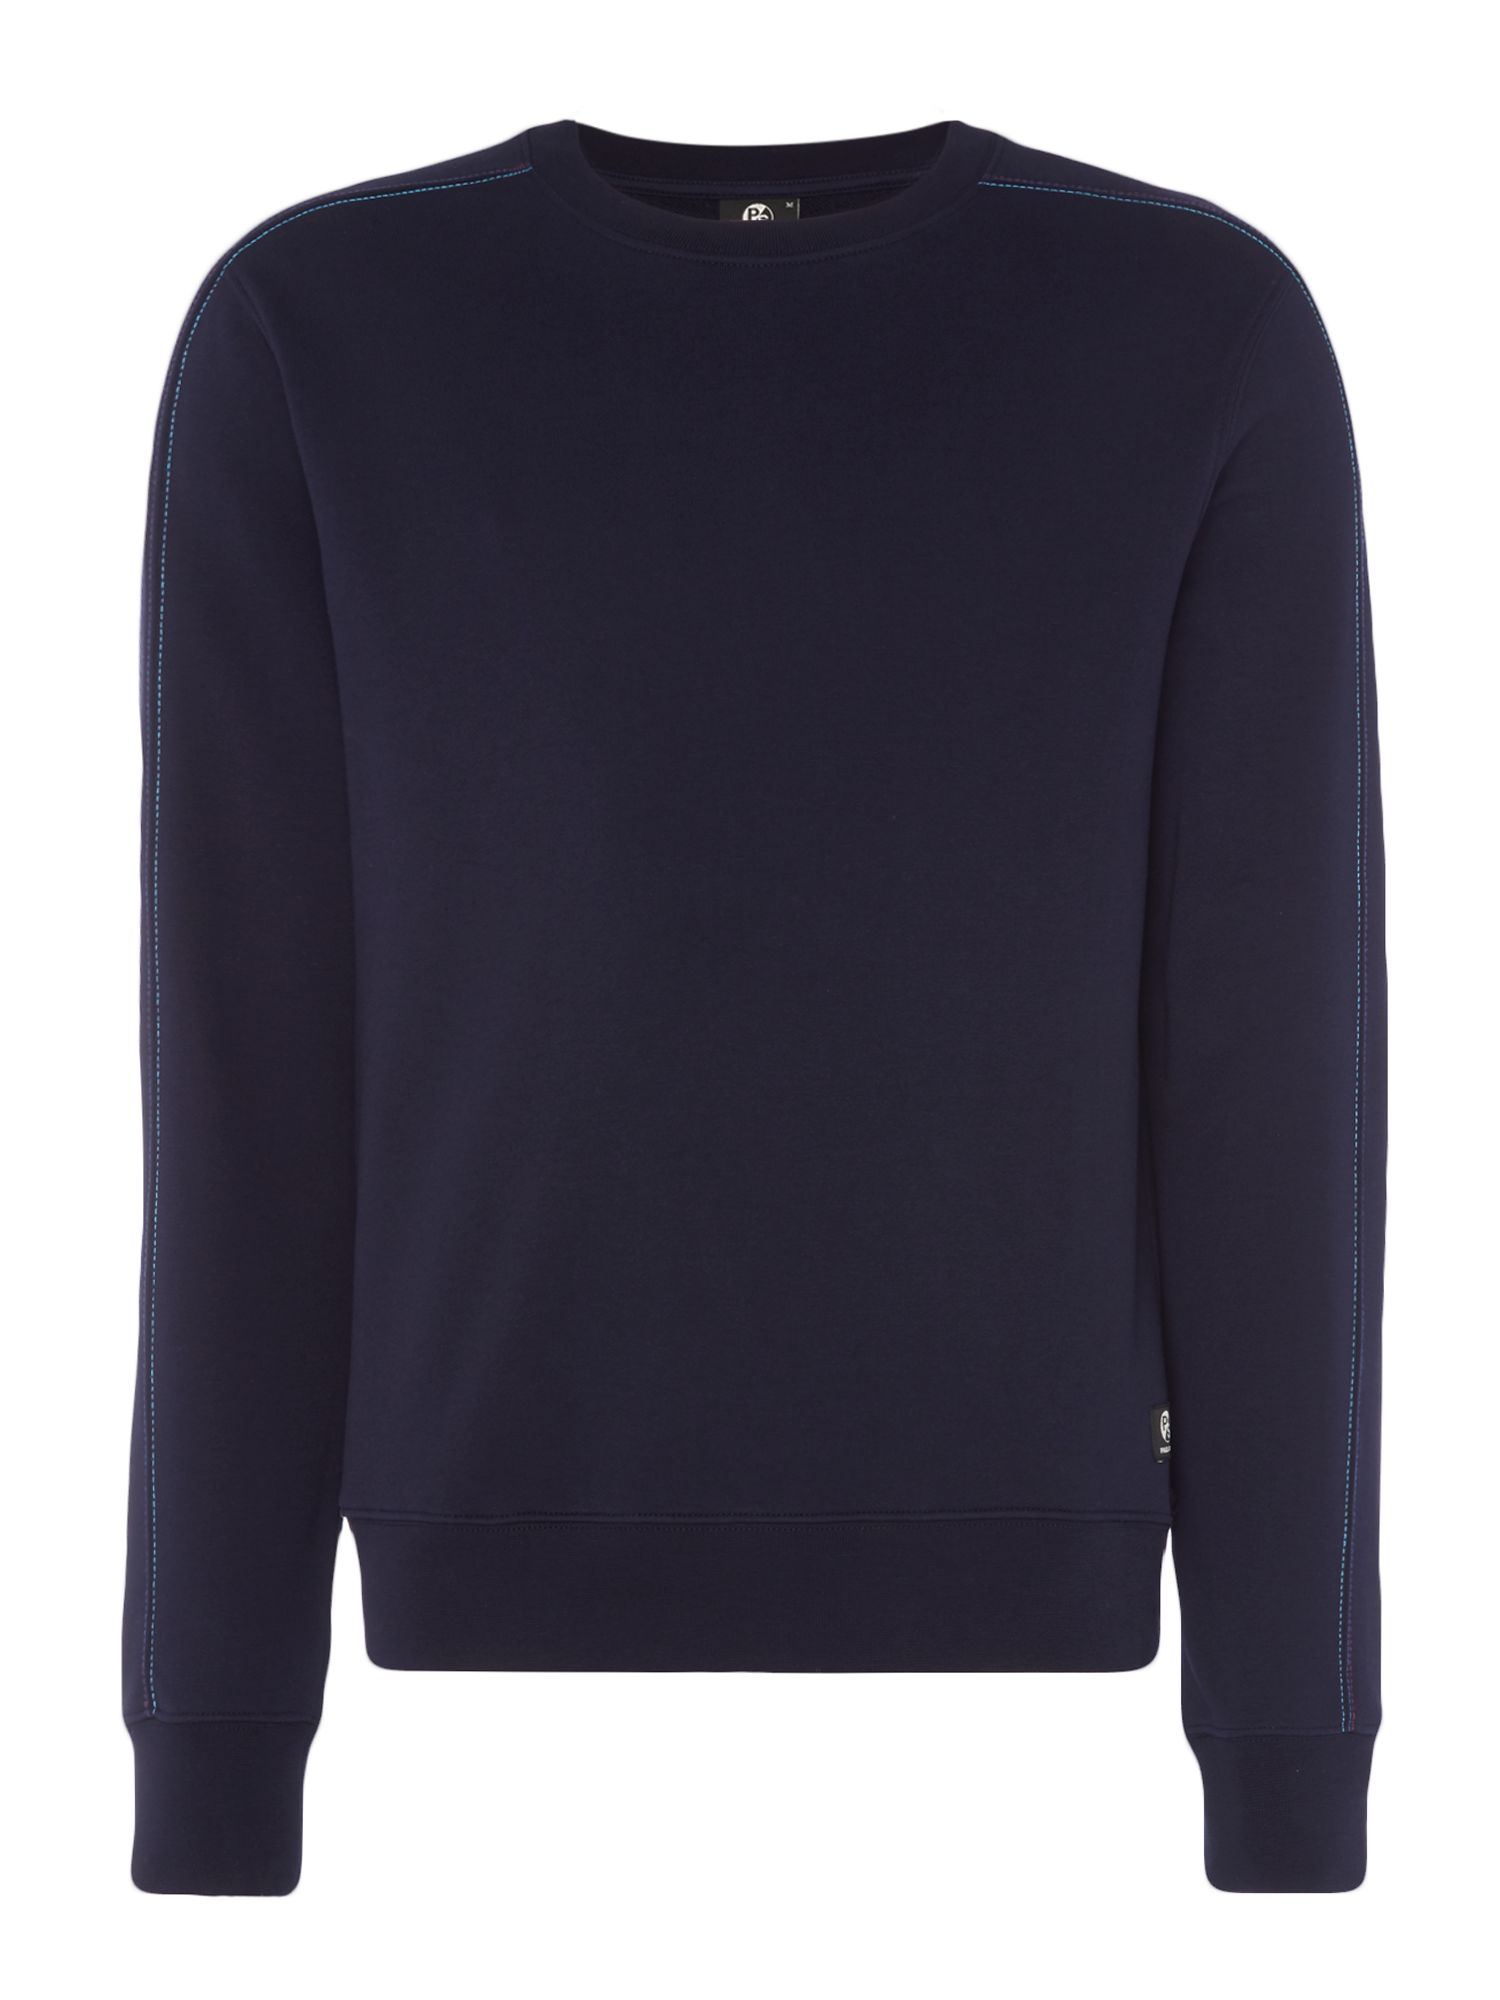 Men's PS By Paul Smith Contrast Stitch Sweatshirt, Blue